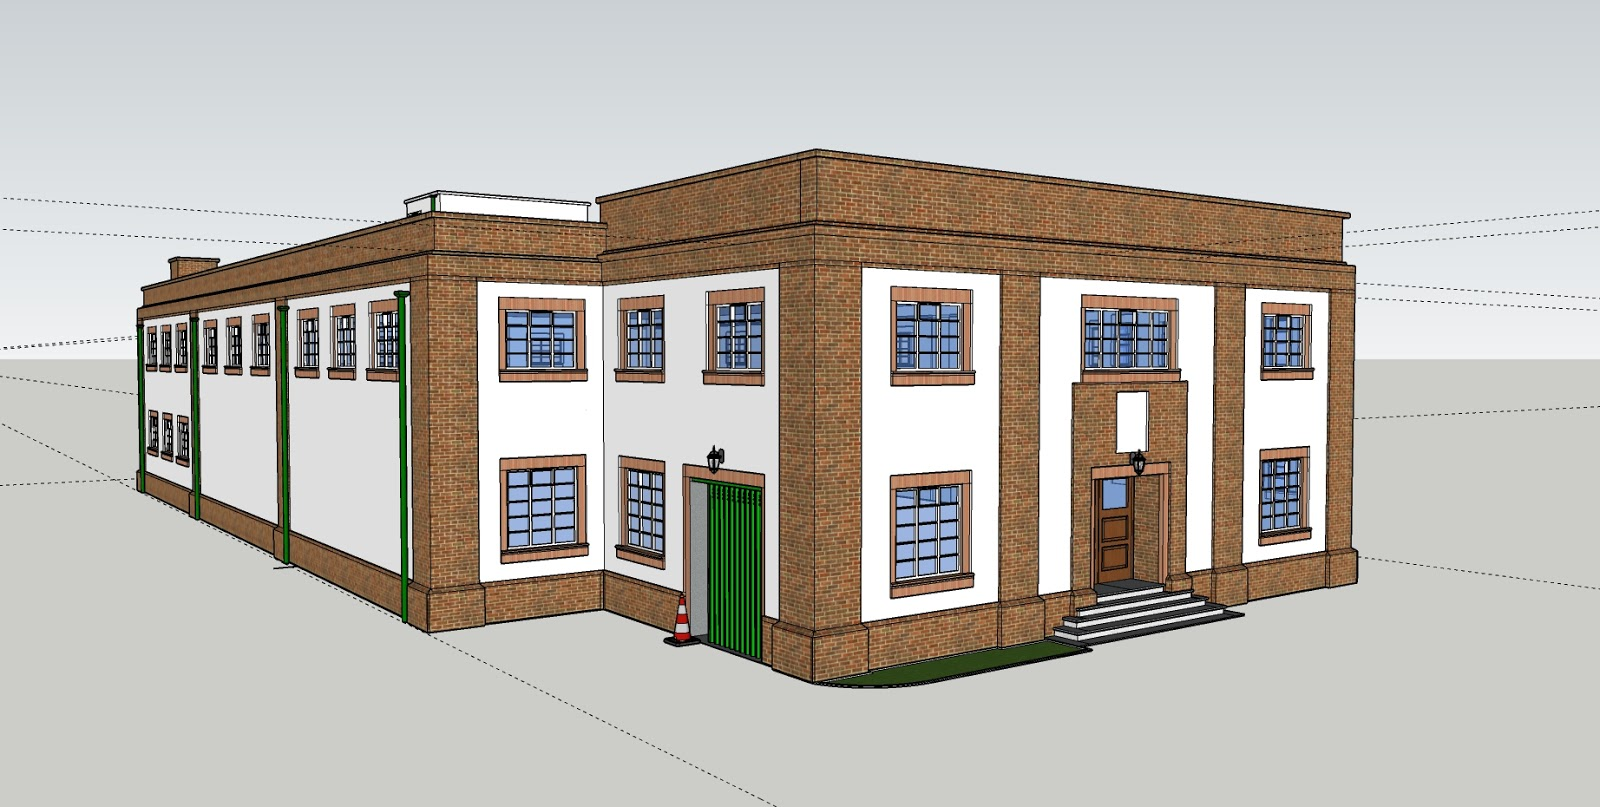 Water mill, based in Chelmsford, Essex. Project to develop a conversion of the building for a new use. Uni Project.